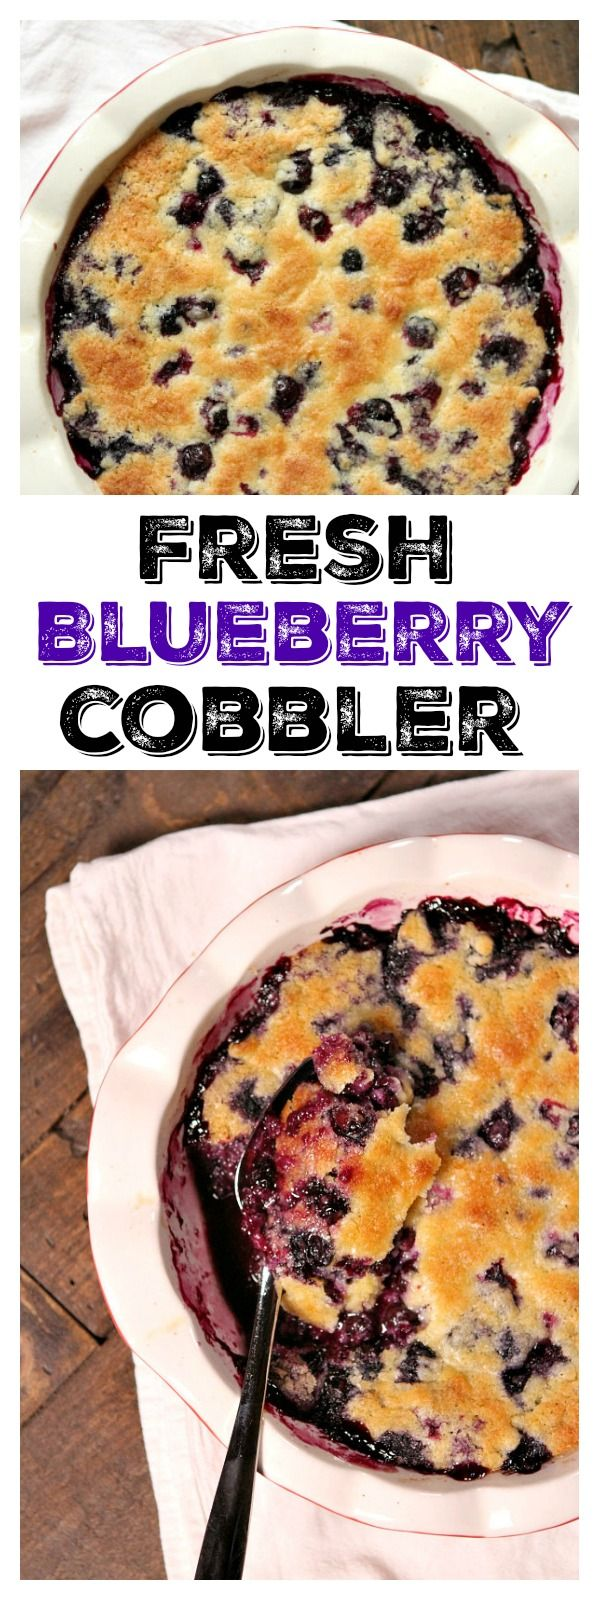 Easy Fresh Blueberry Cobbler recipe : the perfect summer dessert recipe.  This cobbler is amazing served warm with a scoop of vanilla ice cream.  You'll want to guzzle the blueberry syrup left in the